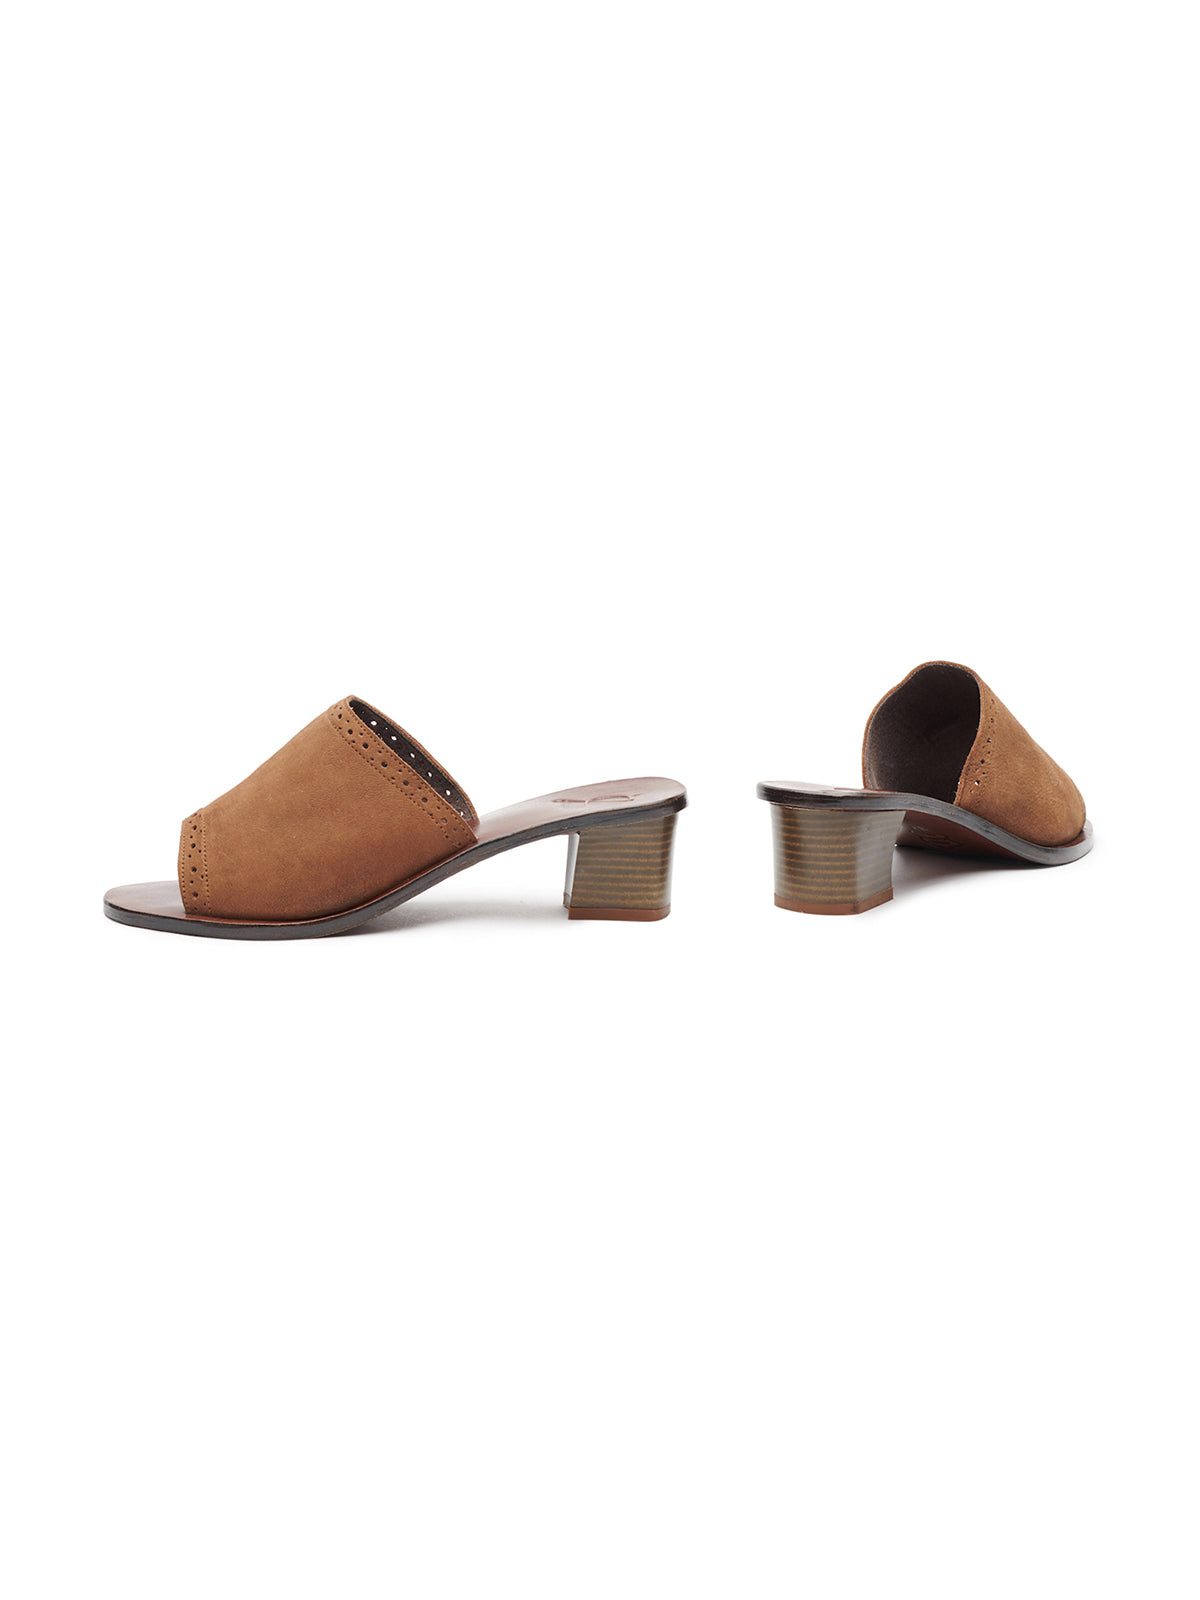 Suede Slide With Block Heel